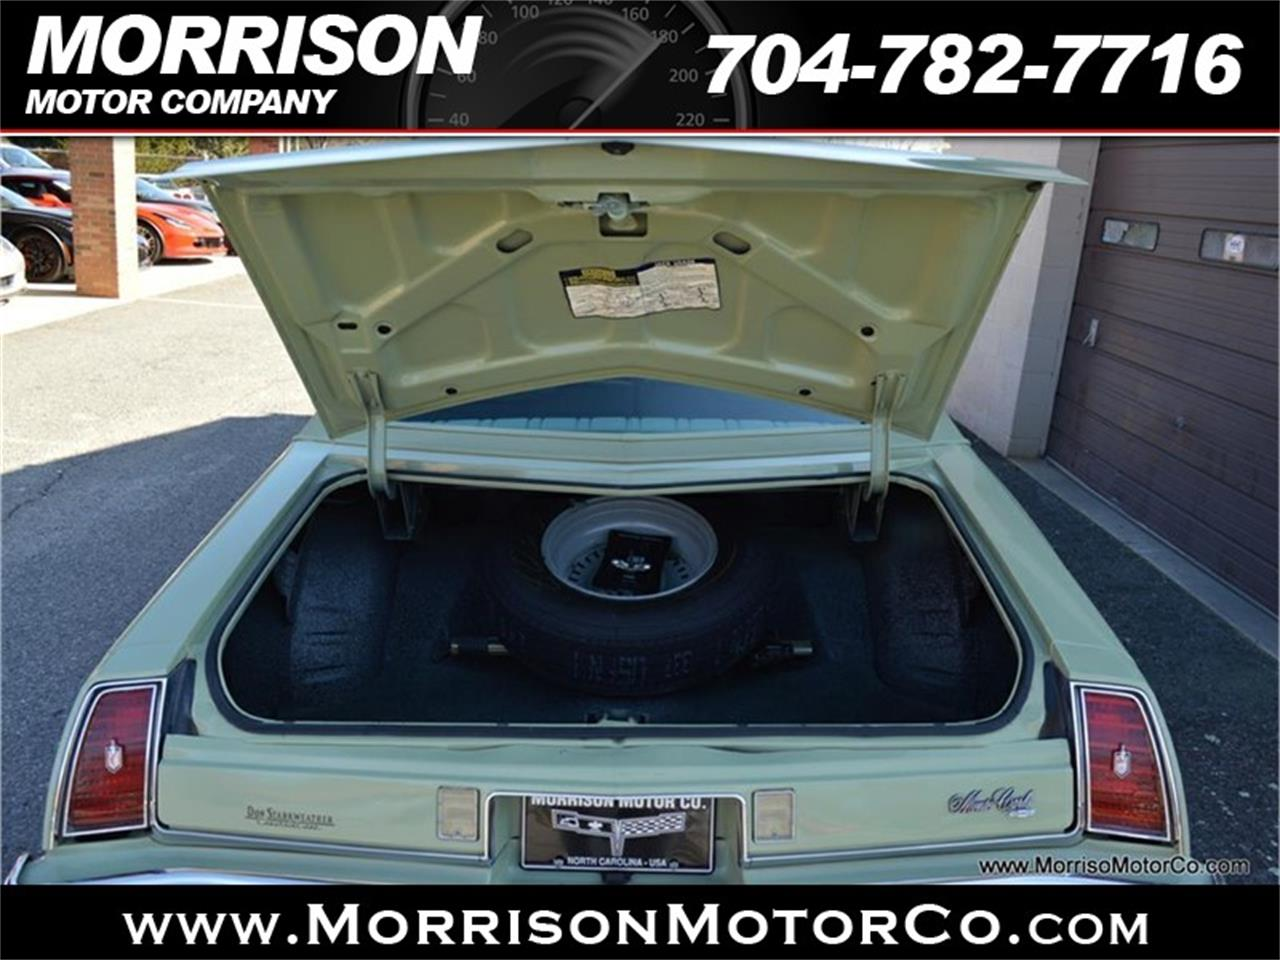 Large Picture of 1974 Monte Carlo Offered by Morrison Motor Company - PEZN